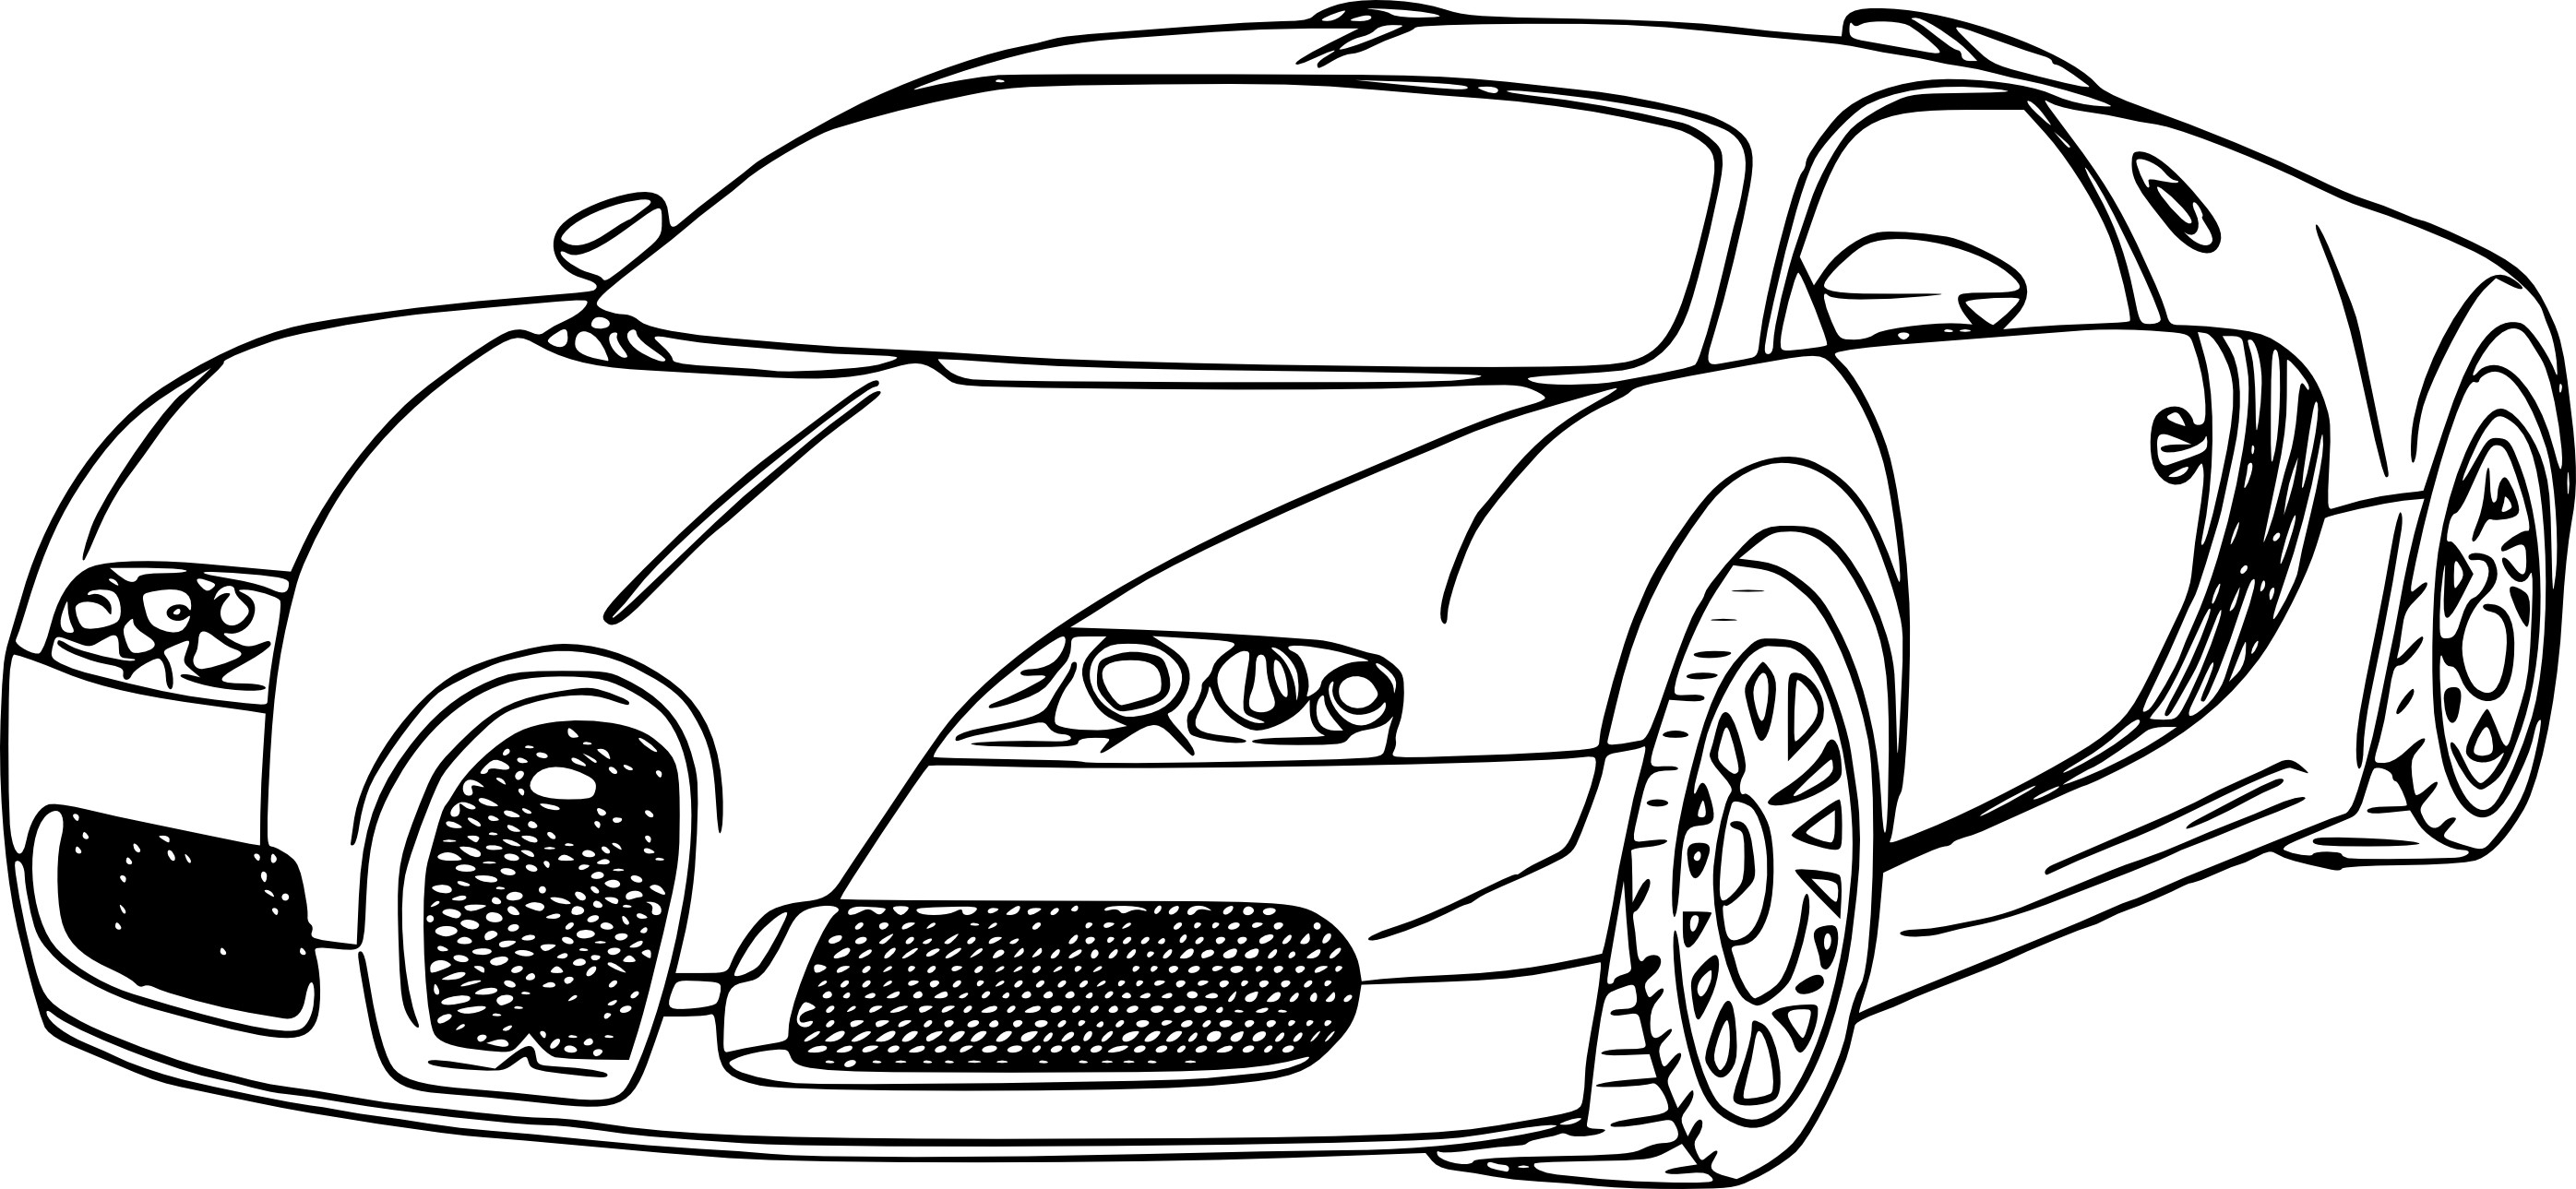 Bugatti Chiron Coloring Page at GetDrawings | Free download